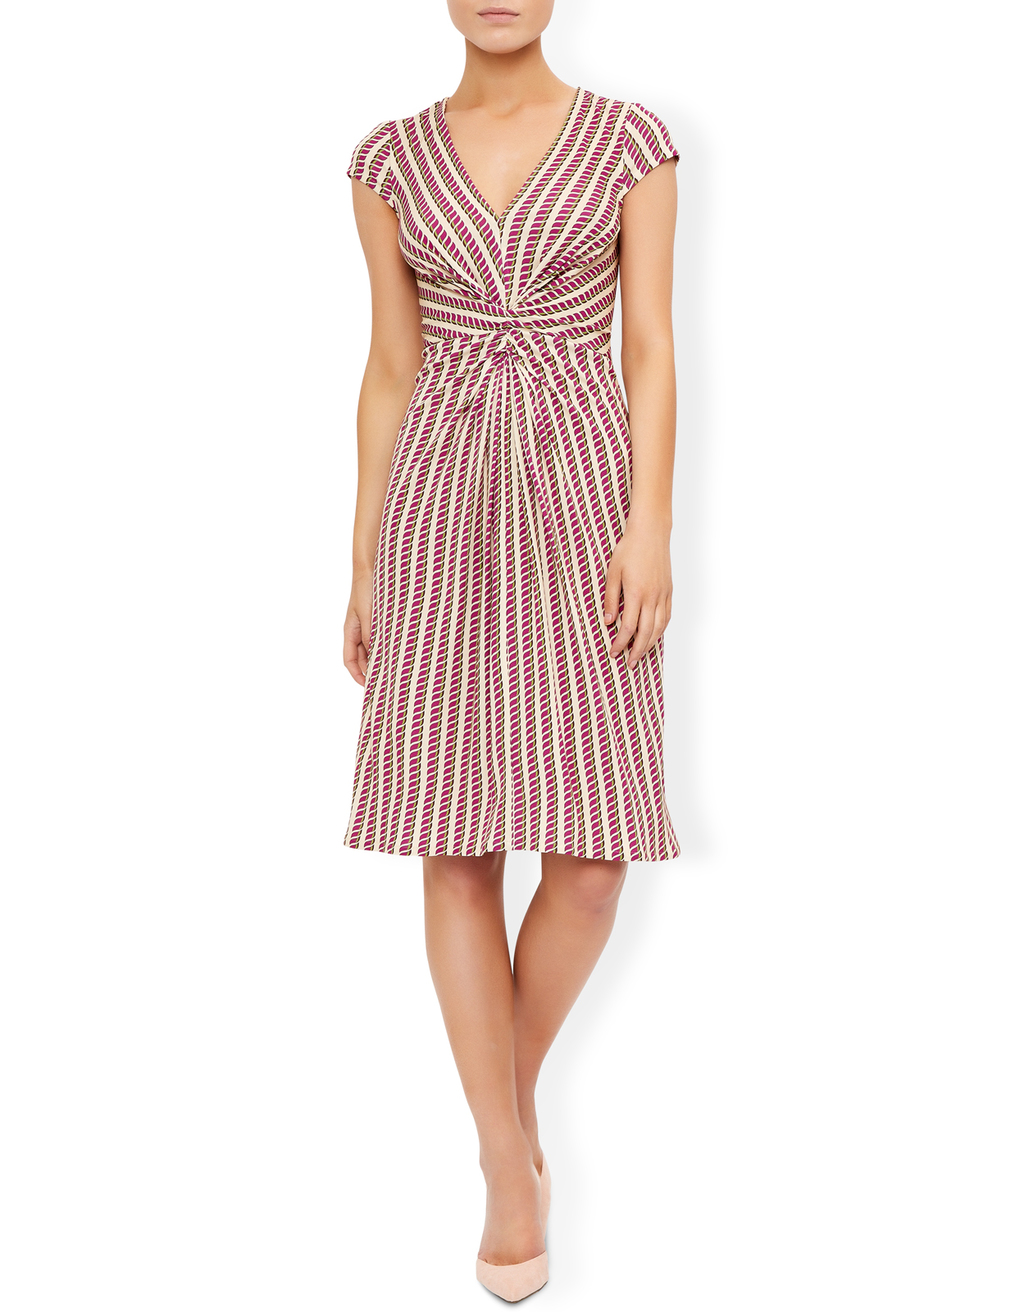 Gabriella Dress - style: shift; neckline: v-neck; sleeve style: capped; pattern: striped; secondary colour: white; predominant colour: pink; occasions: evening; length: on the knee; fit: body skimming; fibres: viscose/rayon - 100%; sleeve length: short sleeve; pattern type: fabric; texture group: jersey - stretchy/drapey; multicoloured: multicoloured; season: s/s 2016; wardrobe: event